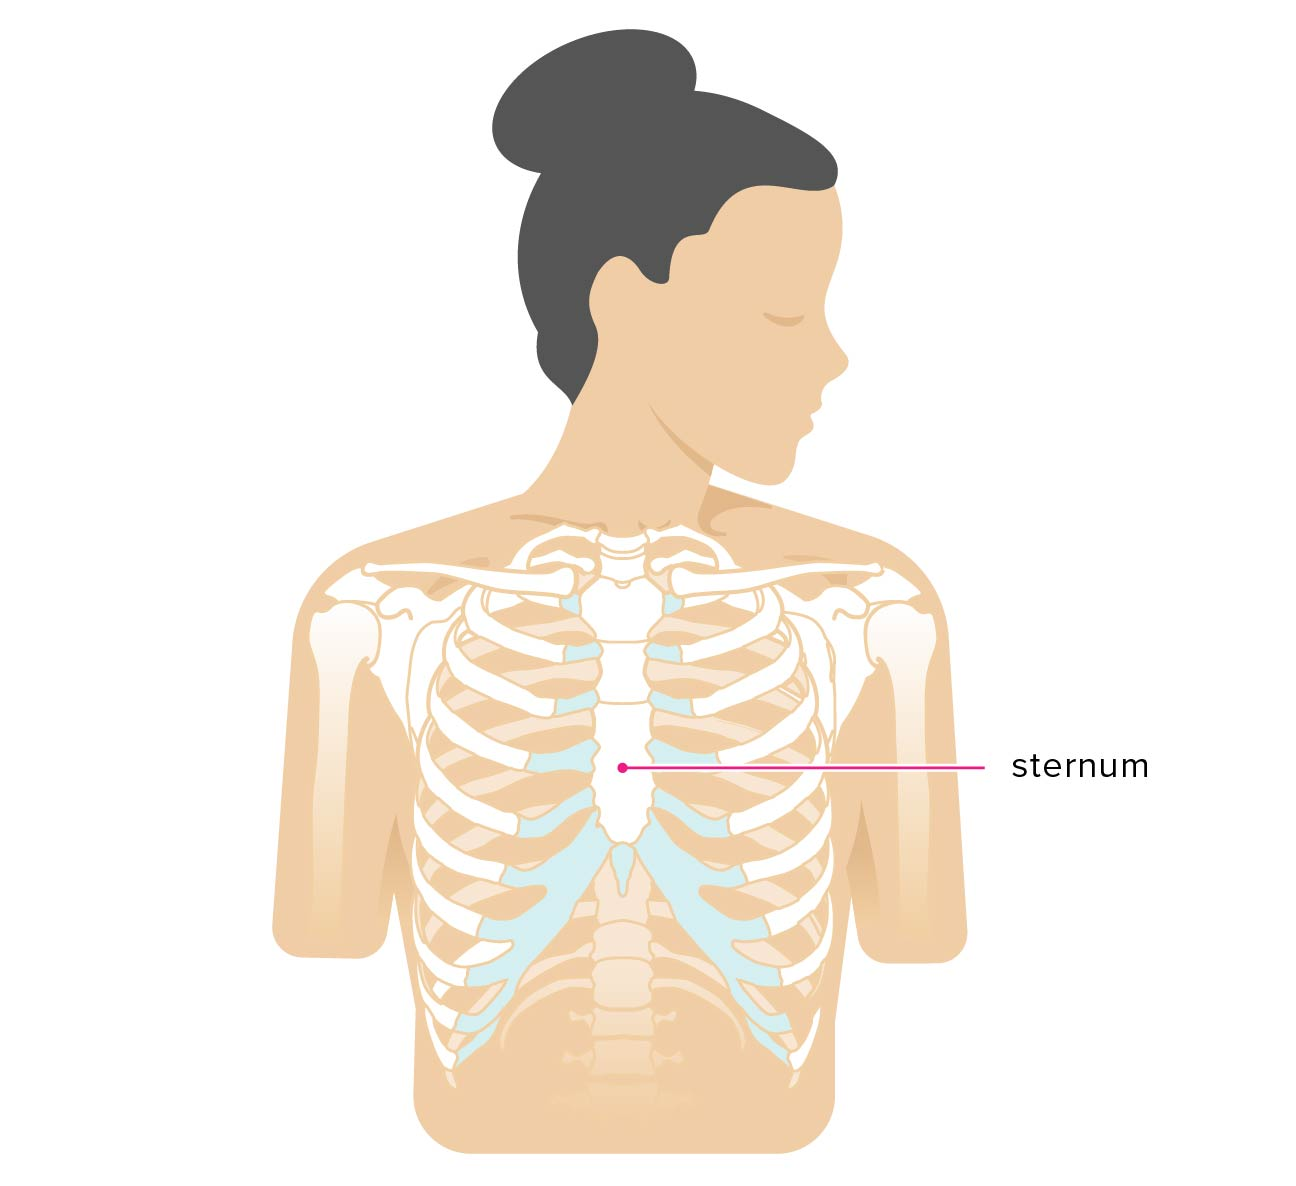 Sternum Popping: Treatment, Pain, Chest Pain, and Symptoms